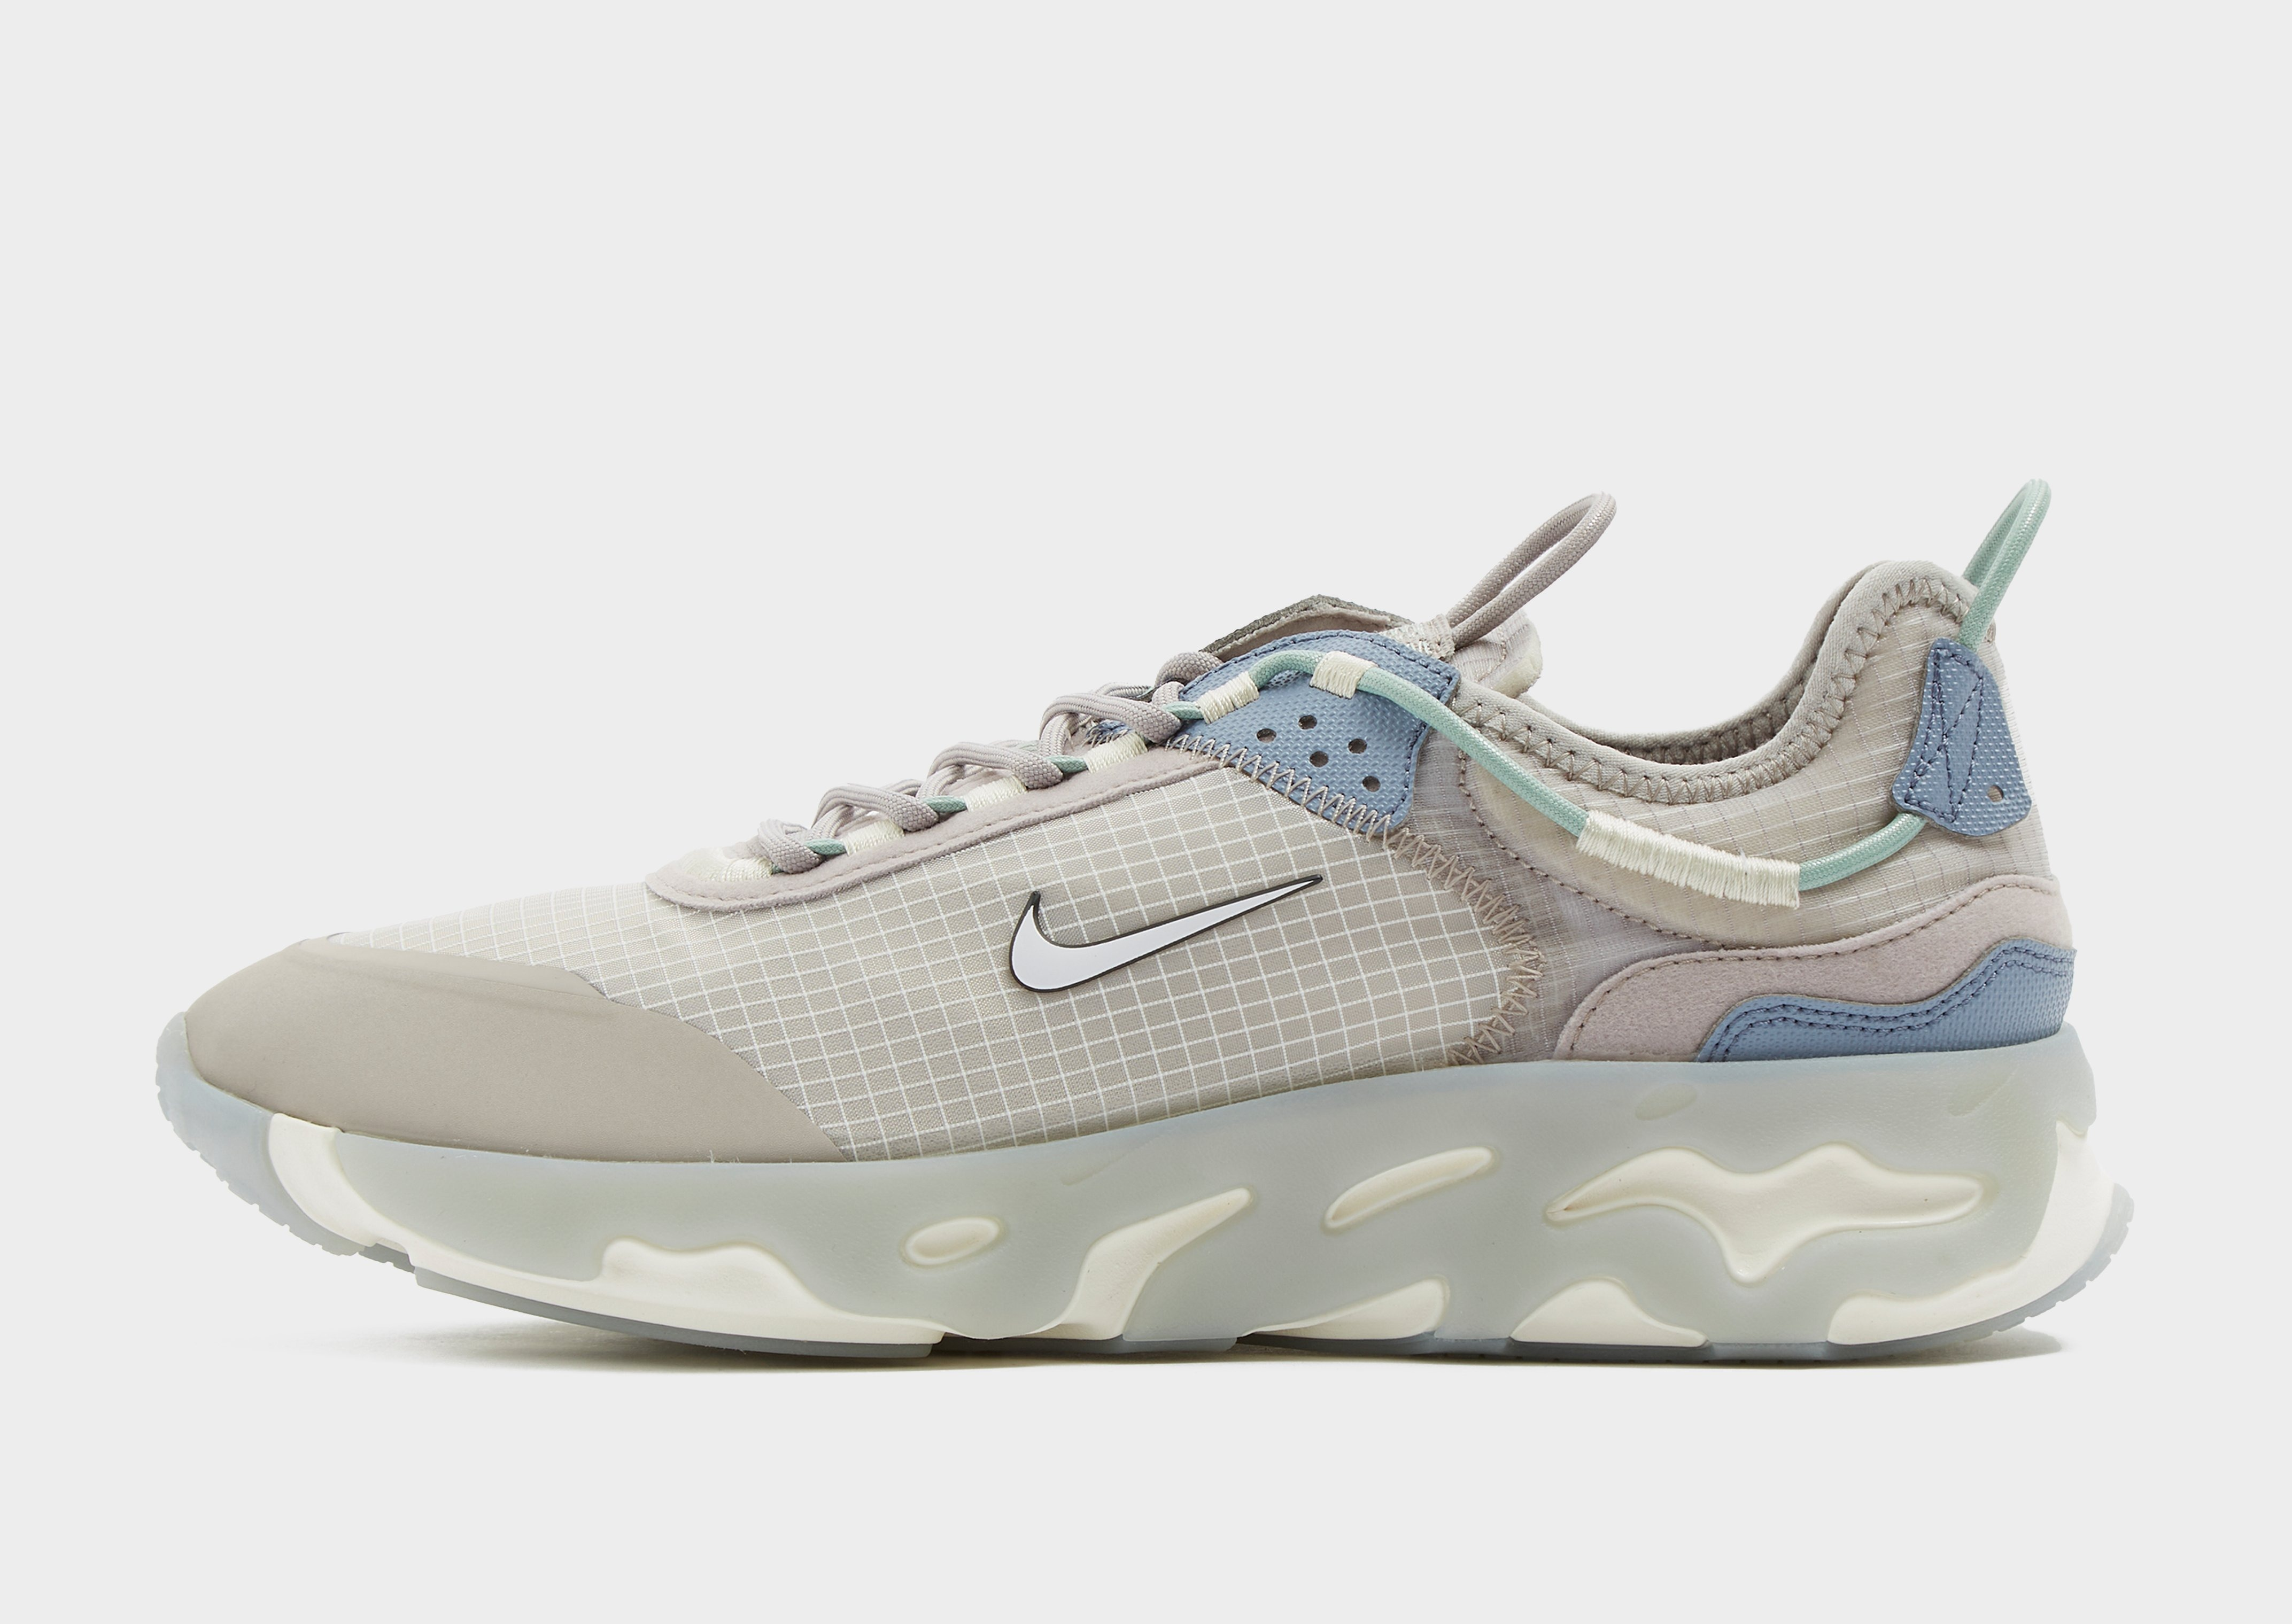 Nike Chaussure Nike React Vision pour Homme | JD Sports